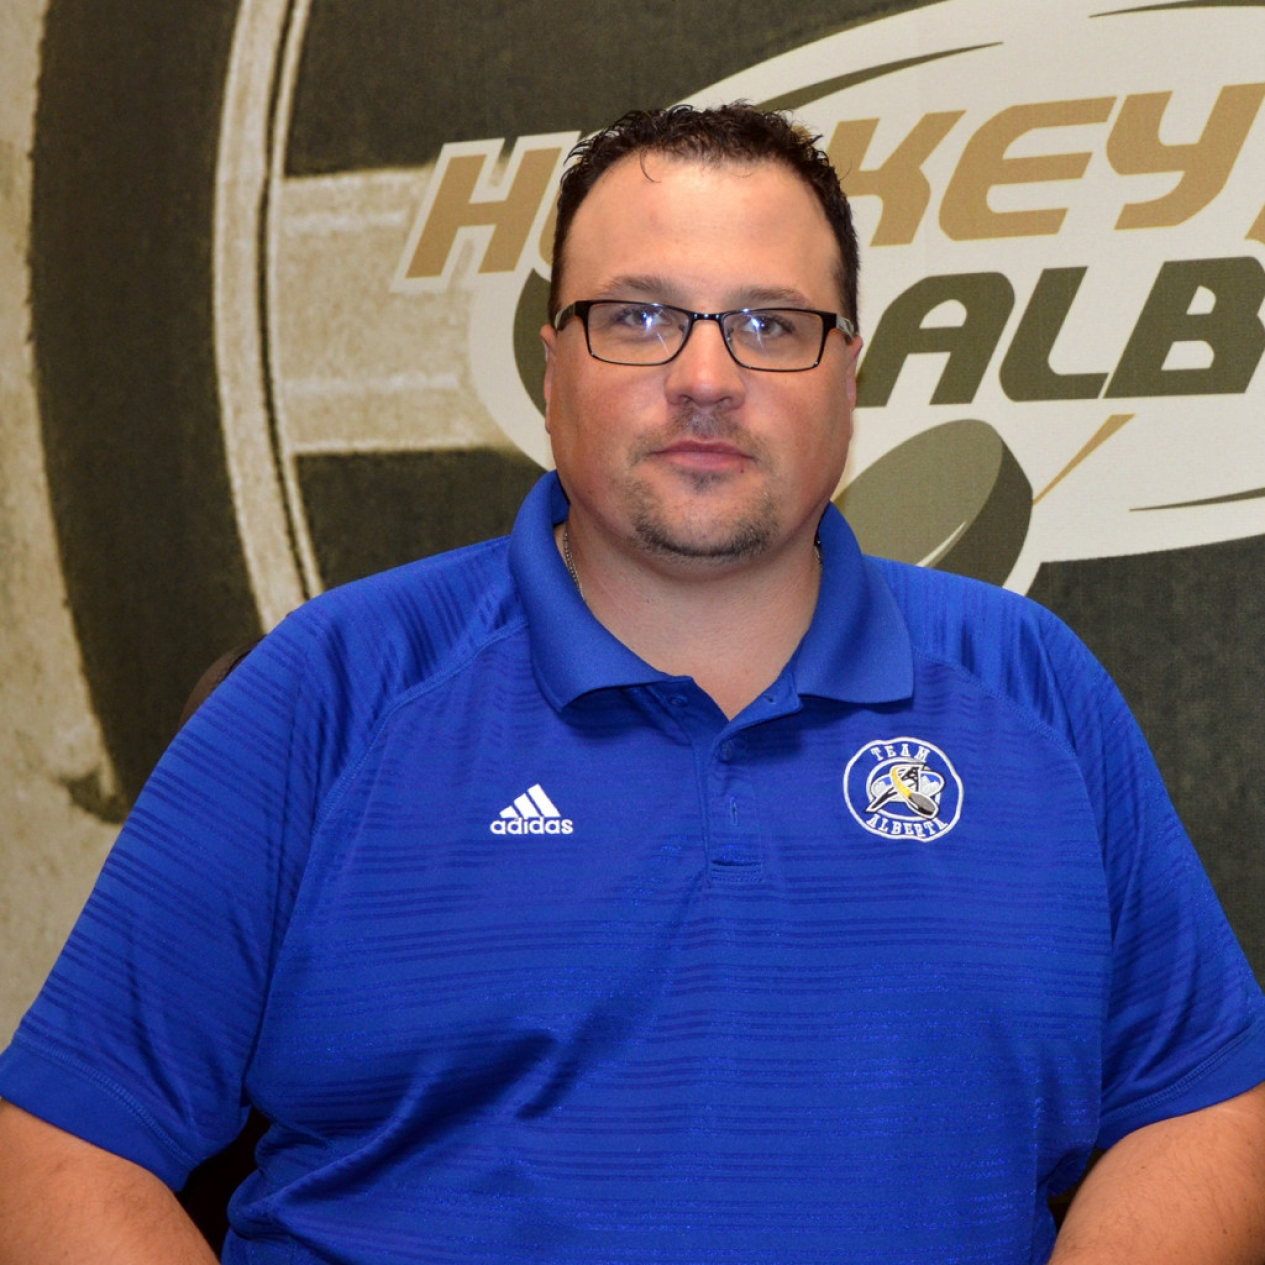 Hockey Alberta Foundation Welcomes New Executive Director